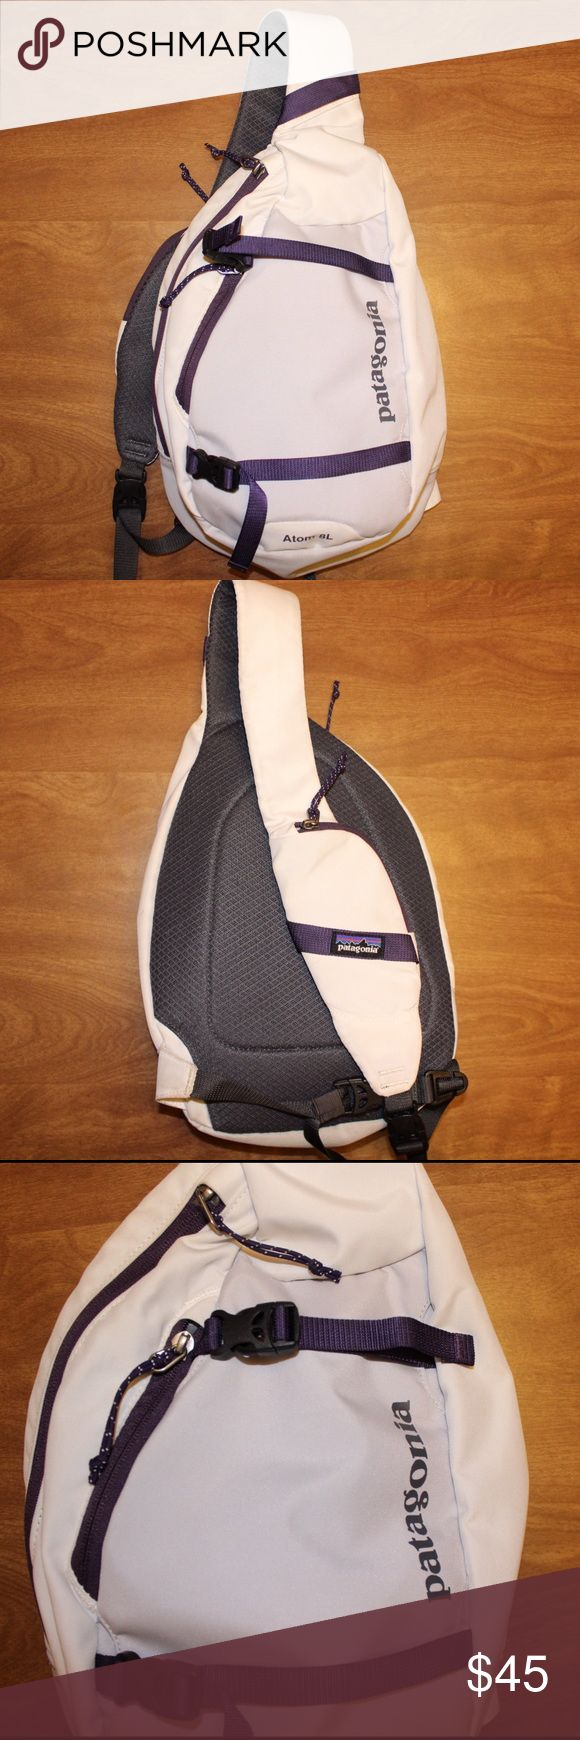 Patagonia Atom Sling Backpack 8L Great condition! Just gave a good scrubbing and washing before taking pics:) (Looking this this bag in all black as well so I would be open to a trade for that!) Patagonia Bags Backpacks